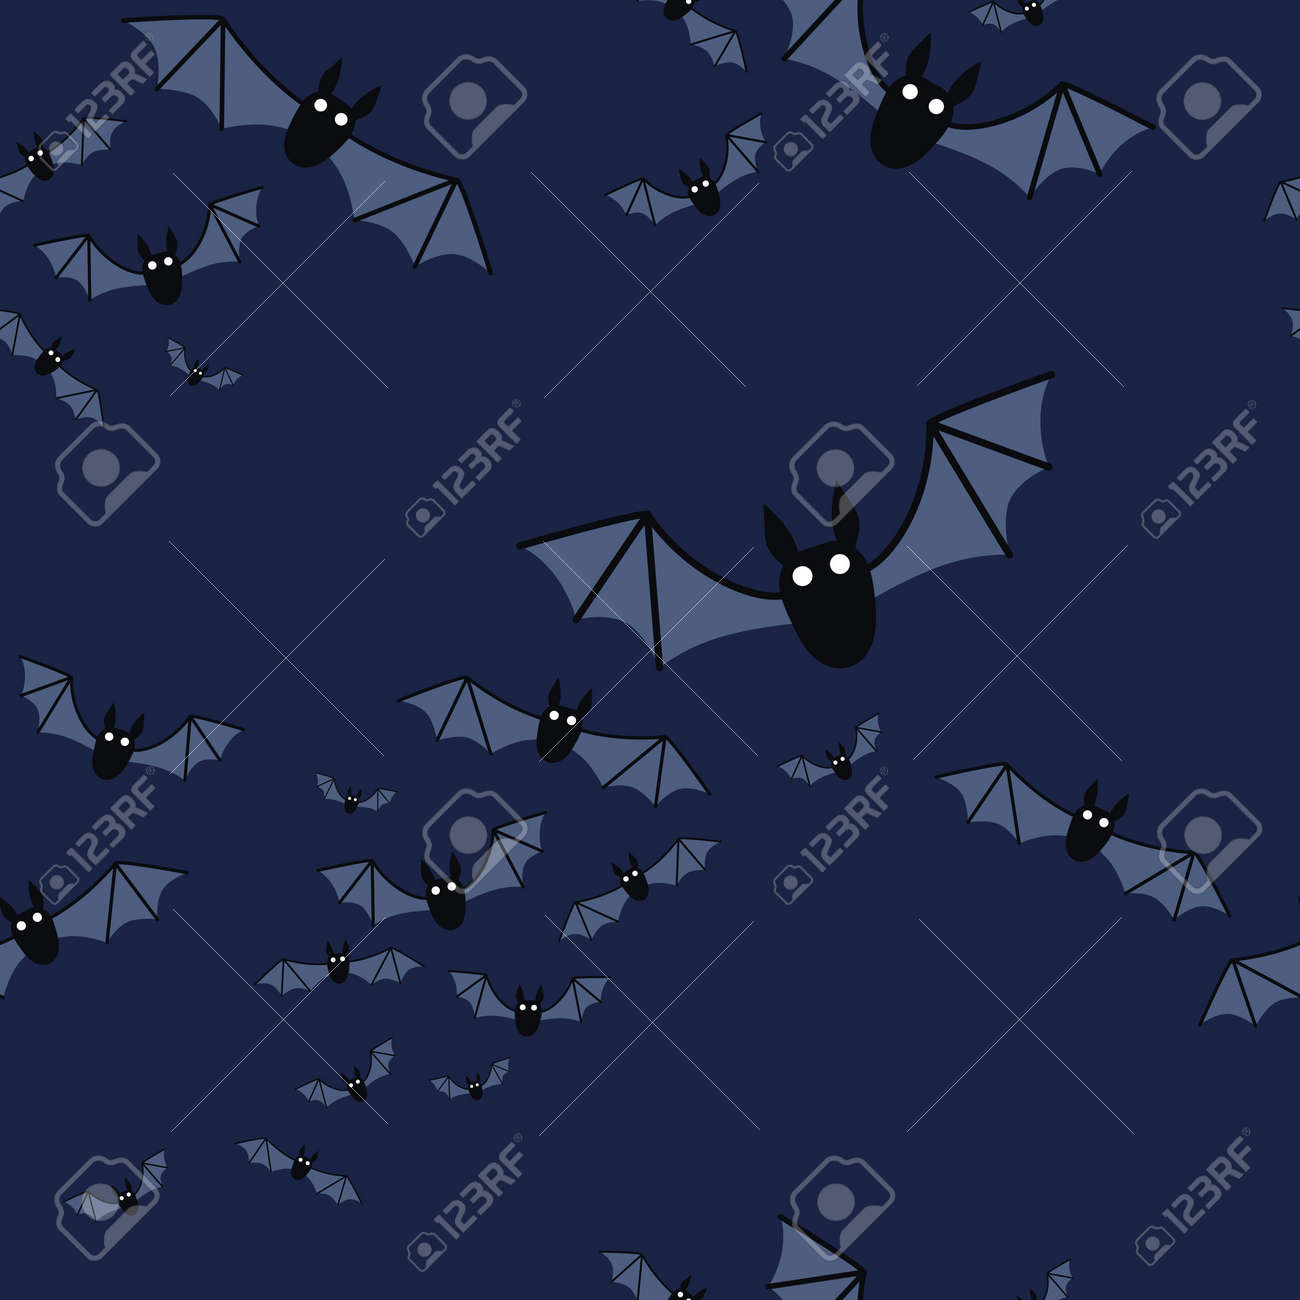 Halloween seamless pattern with flying bats. Vector - 161156582